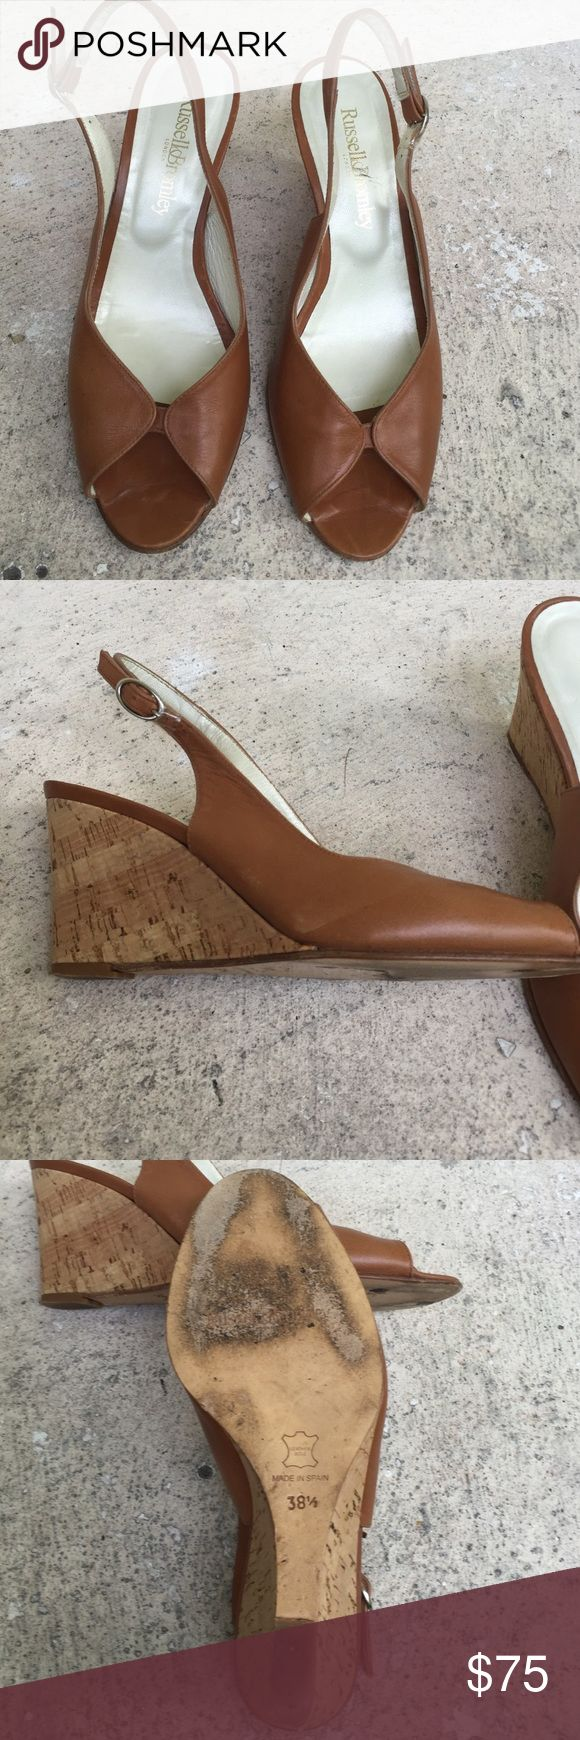 "Russell & Bromley London Natural color cork sling backs, beautiful shoes. Says sz8.5 but fit like an 8. In very good condition 3"" heel Russell & Bromley Shoes"